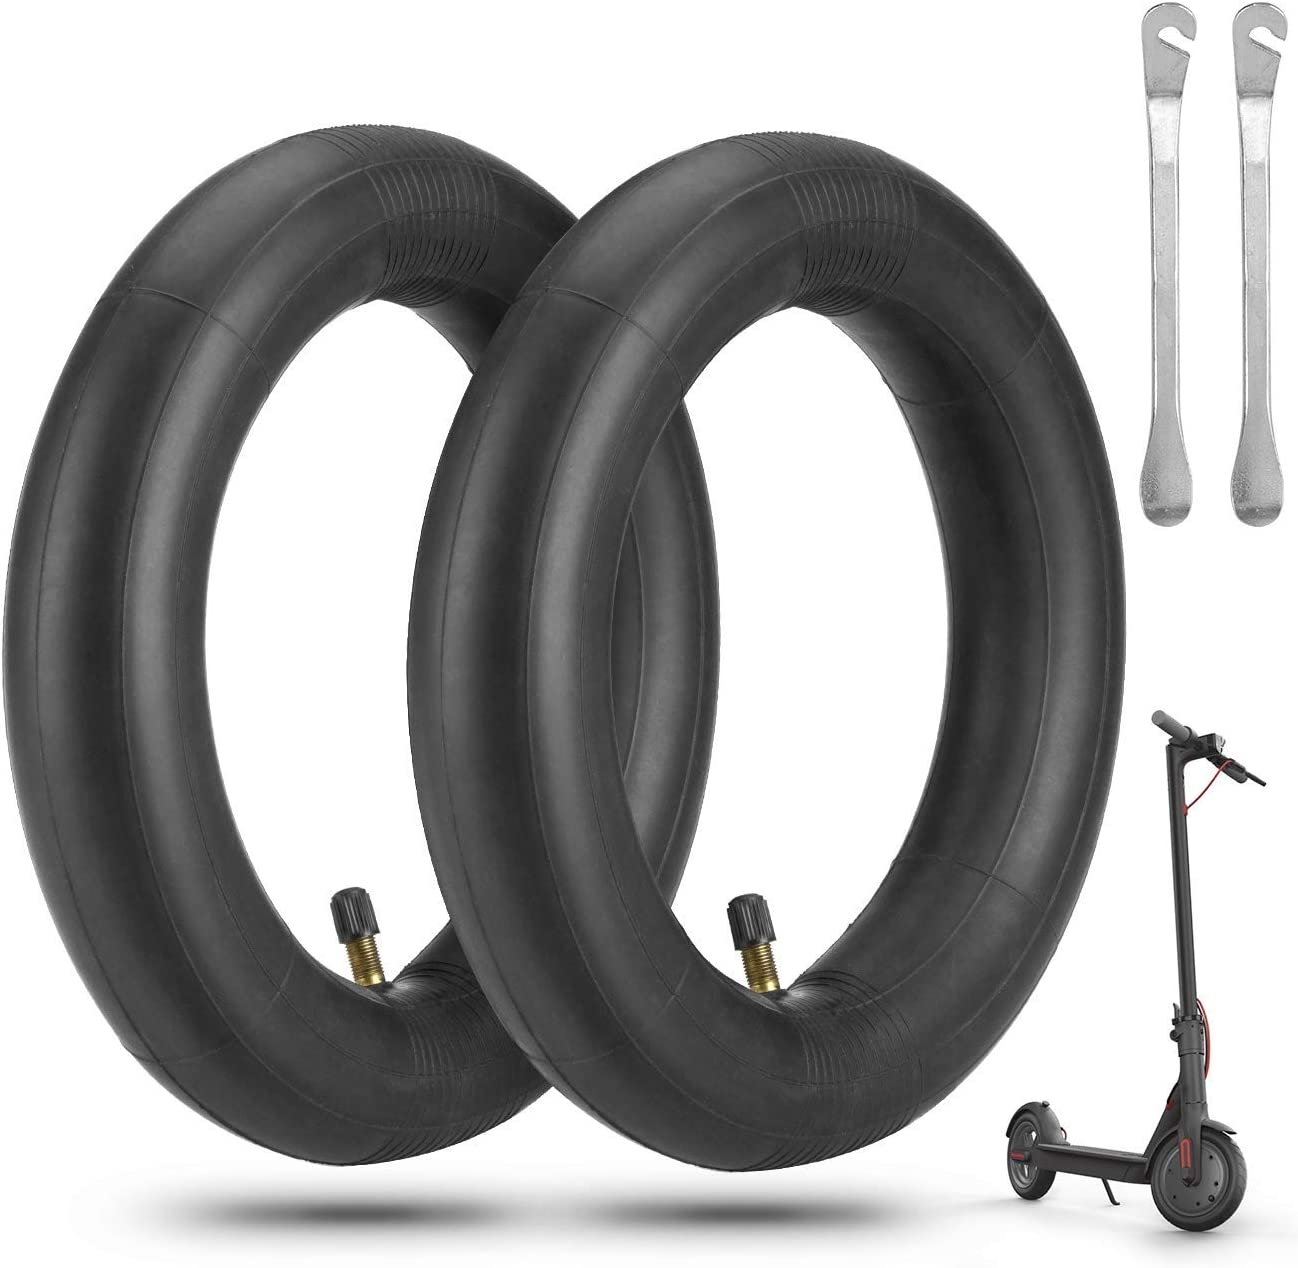 Inner Tube 1pc 8.5 Inch Thick Black Spare Accessories For Xiaomi M365pro Durable